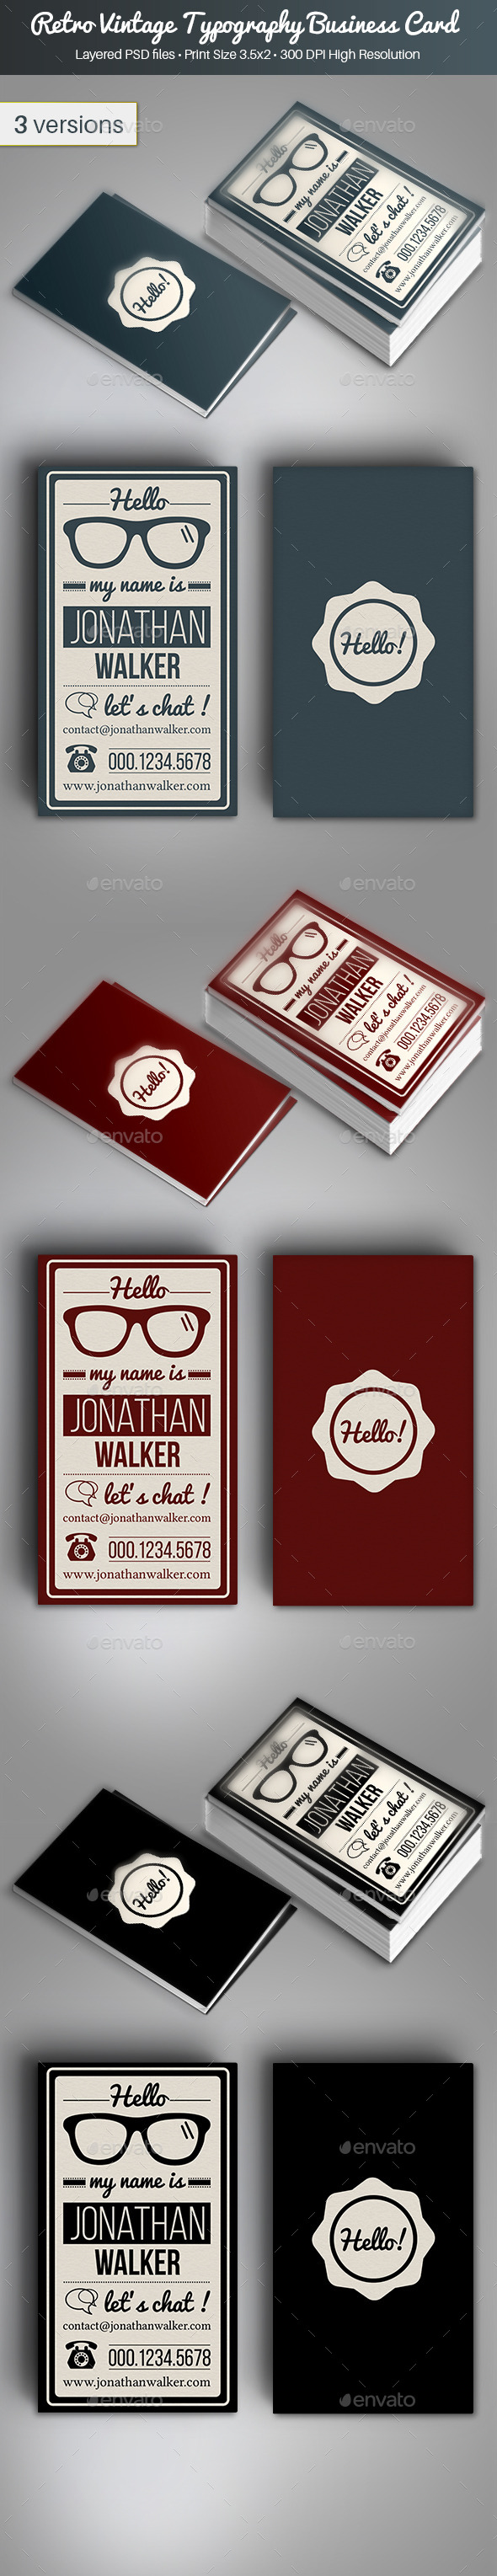 GraphicRiver Retro Vintage Typography Business Card 9983492